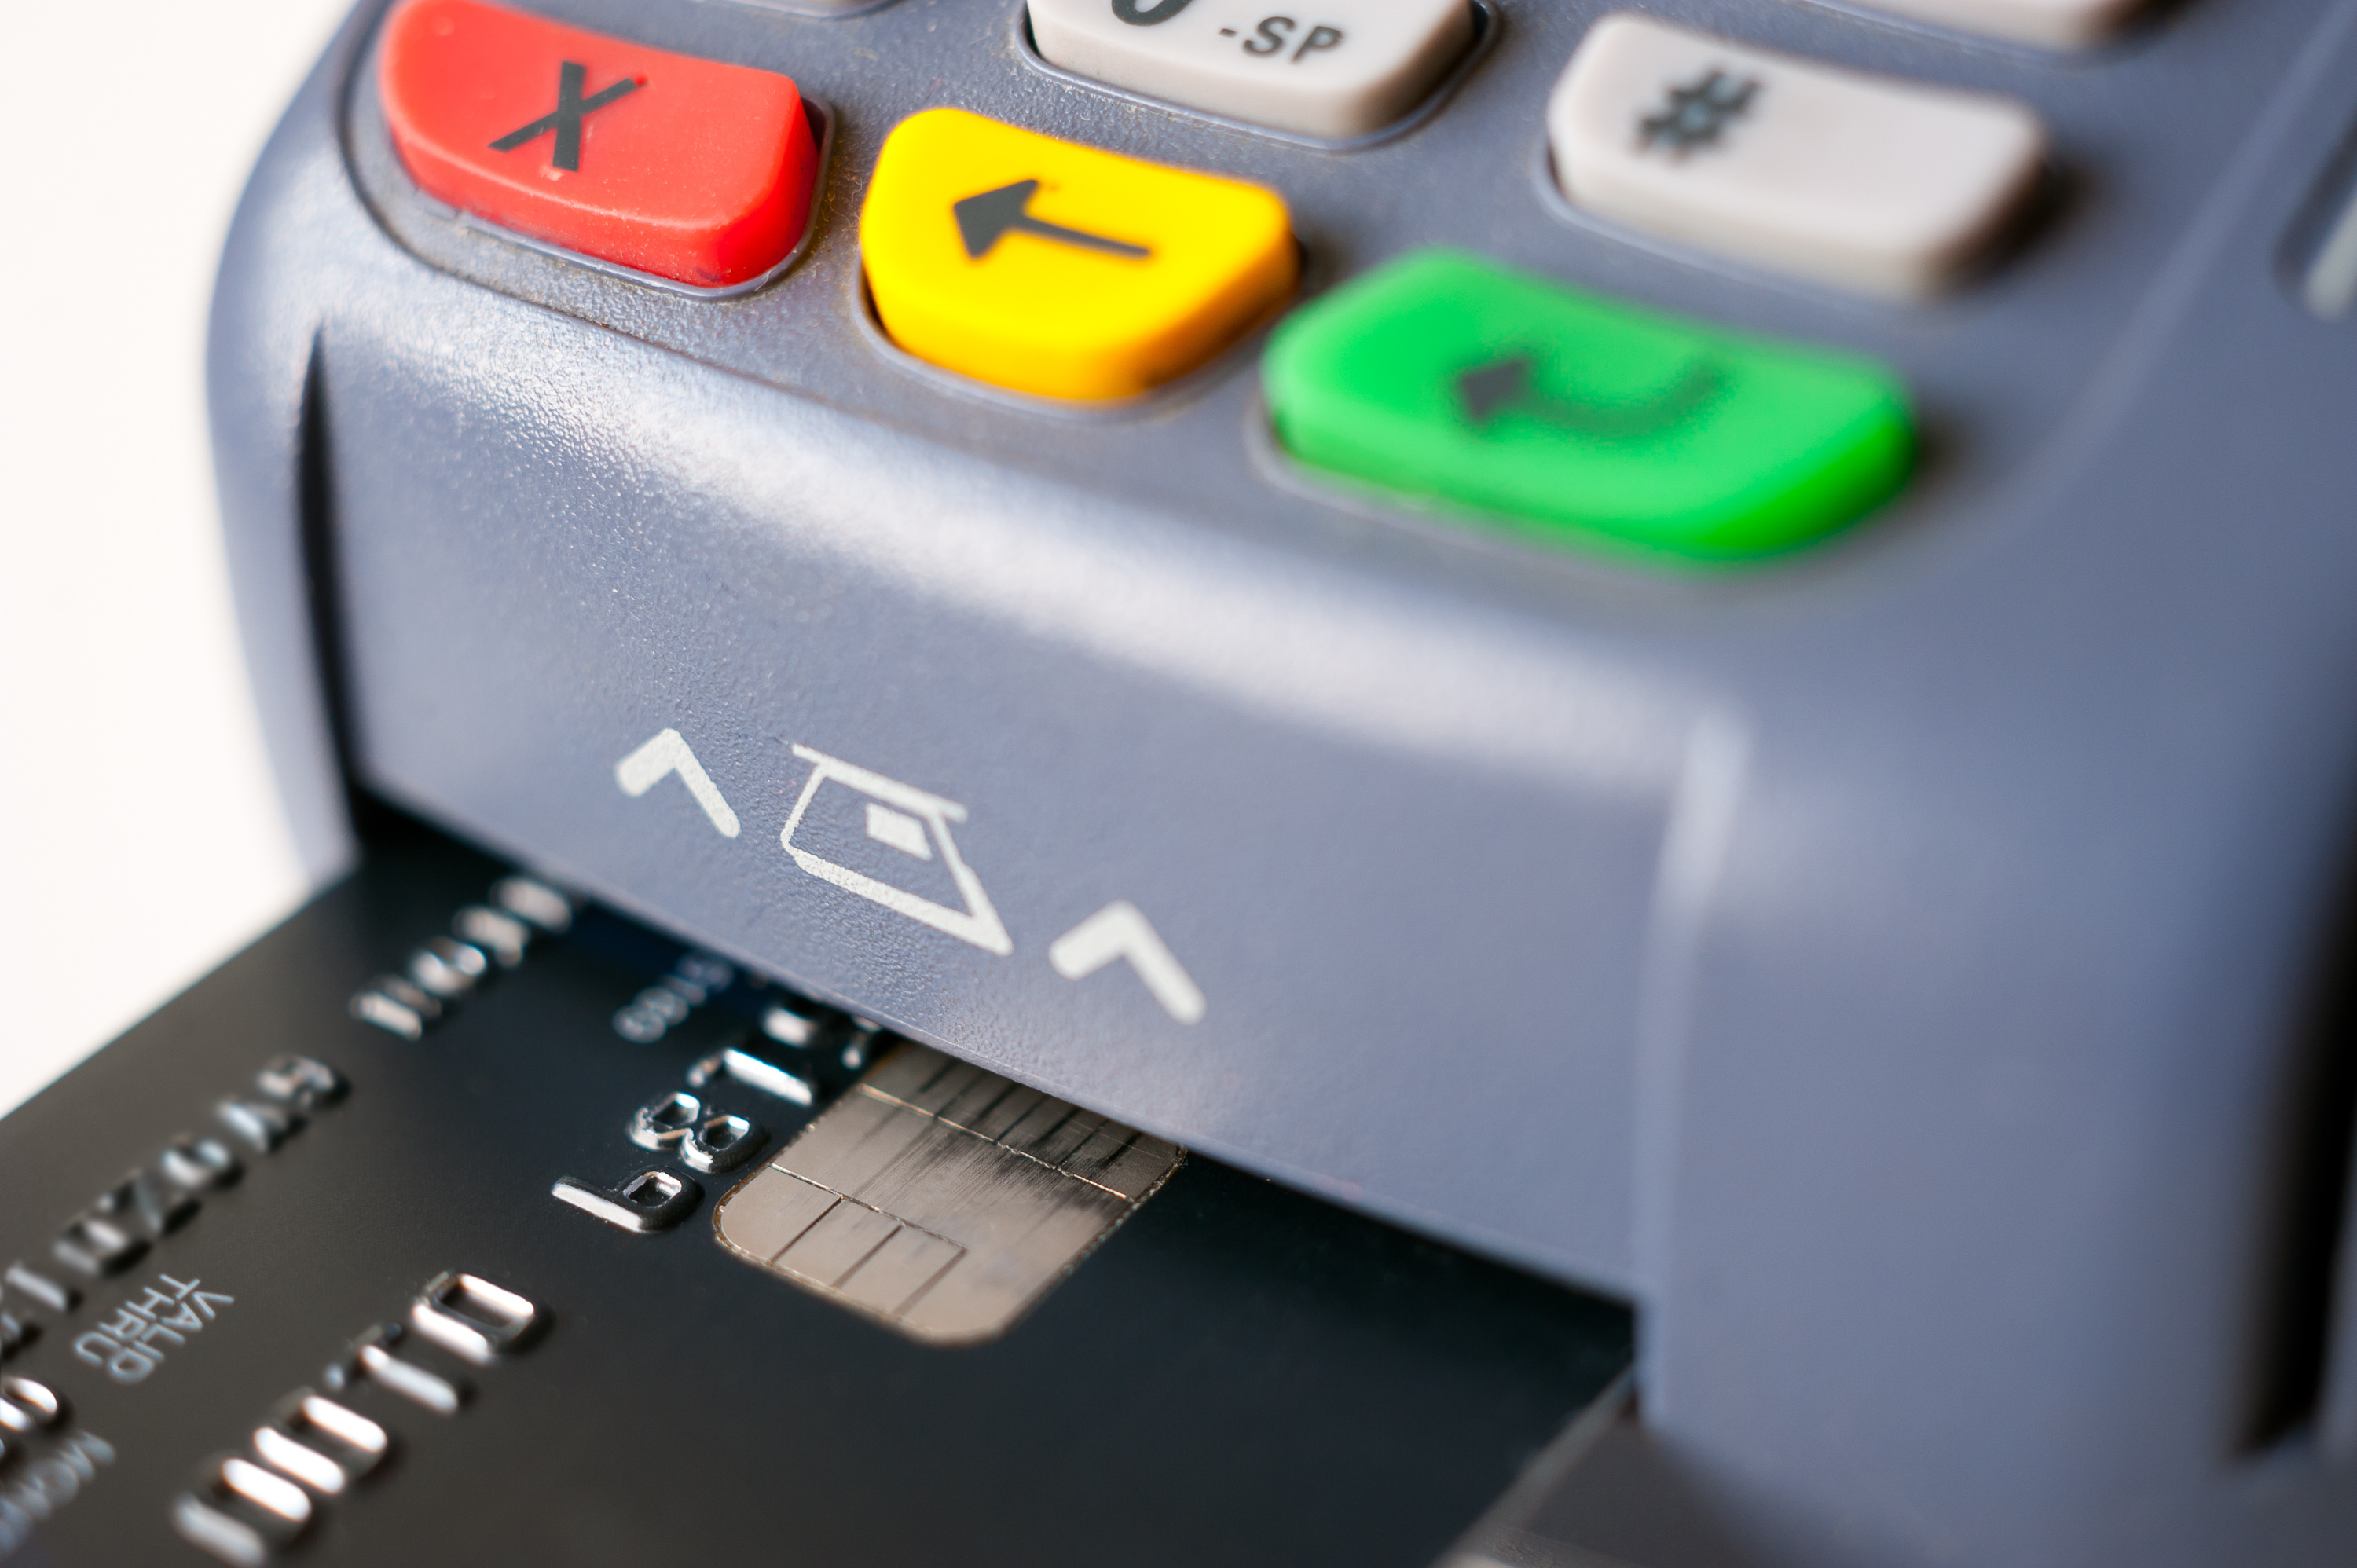 EMV chip being used for purchase